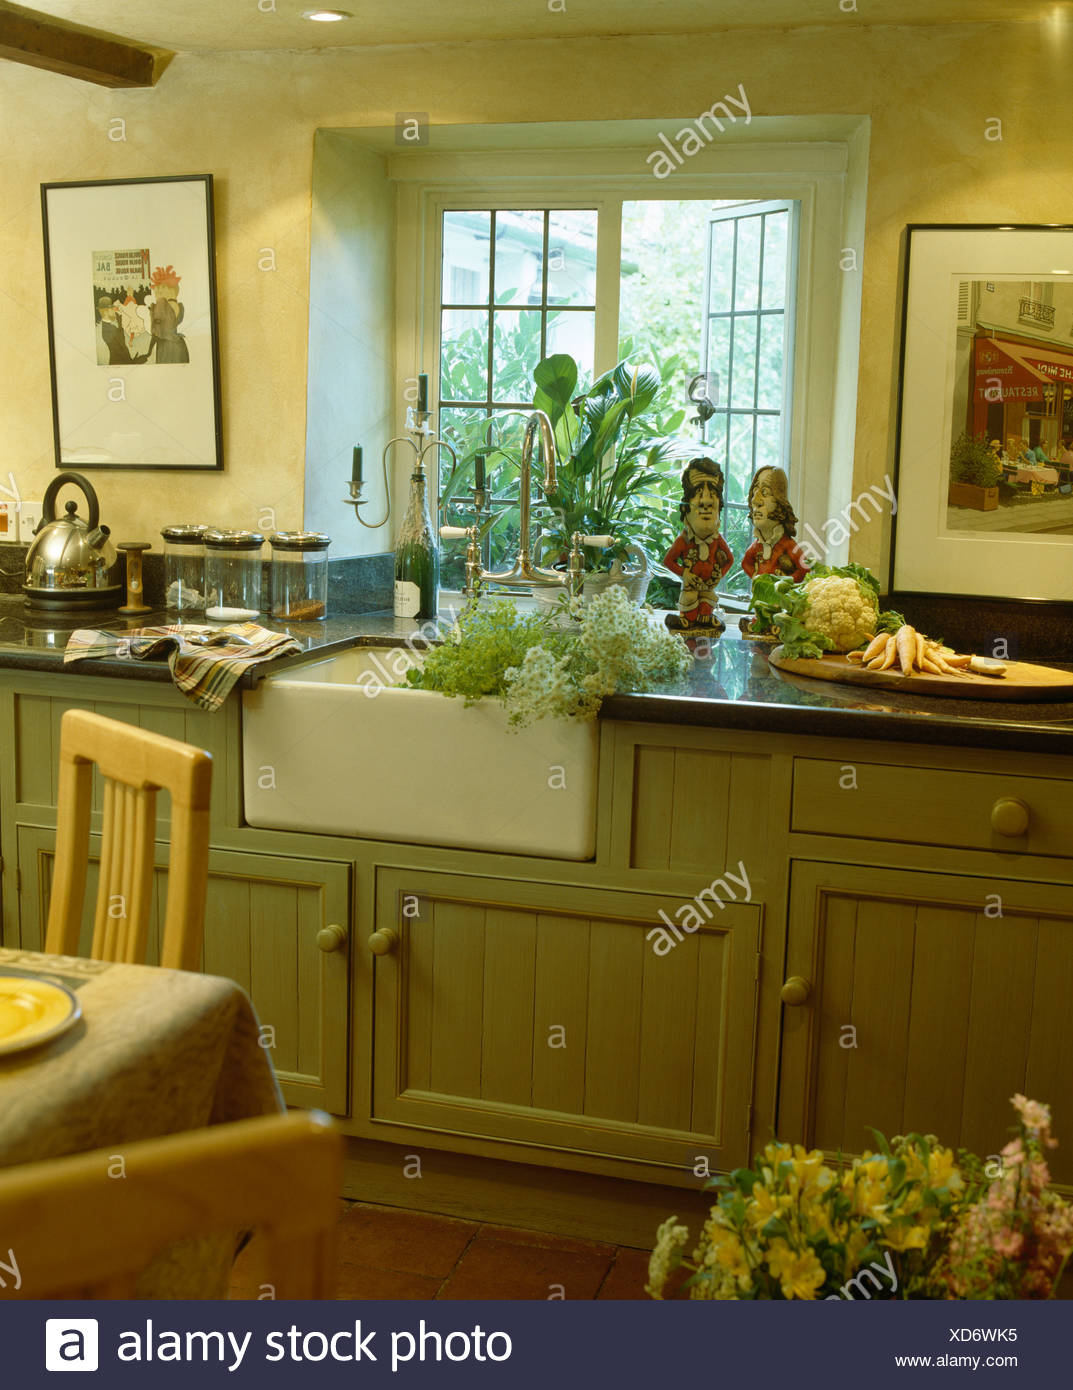 White Belfast Sink Below Window In Country Cottage Kitchen With Pale Green Fitted Units Stock Photo Alamy